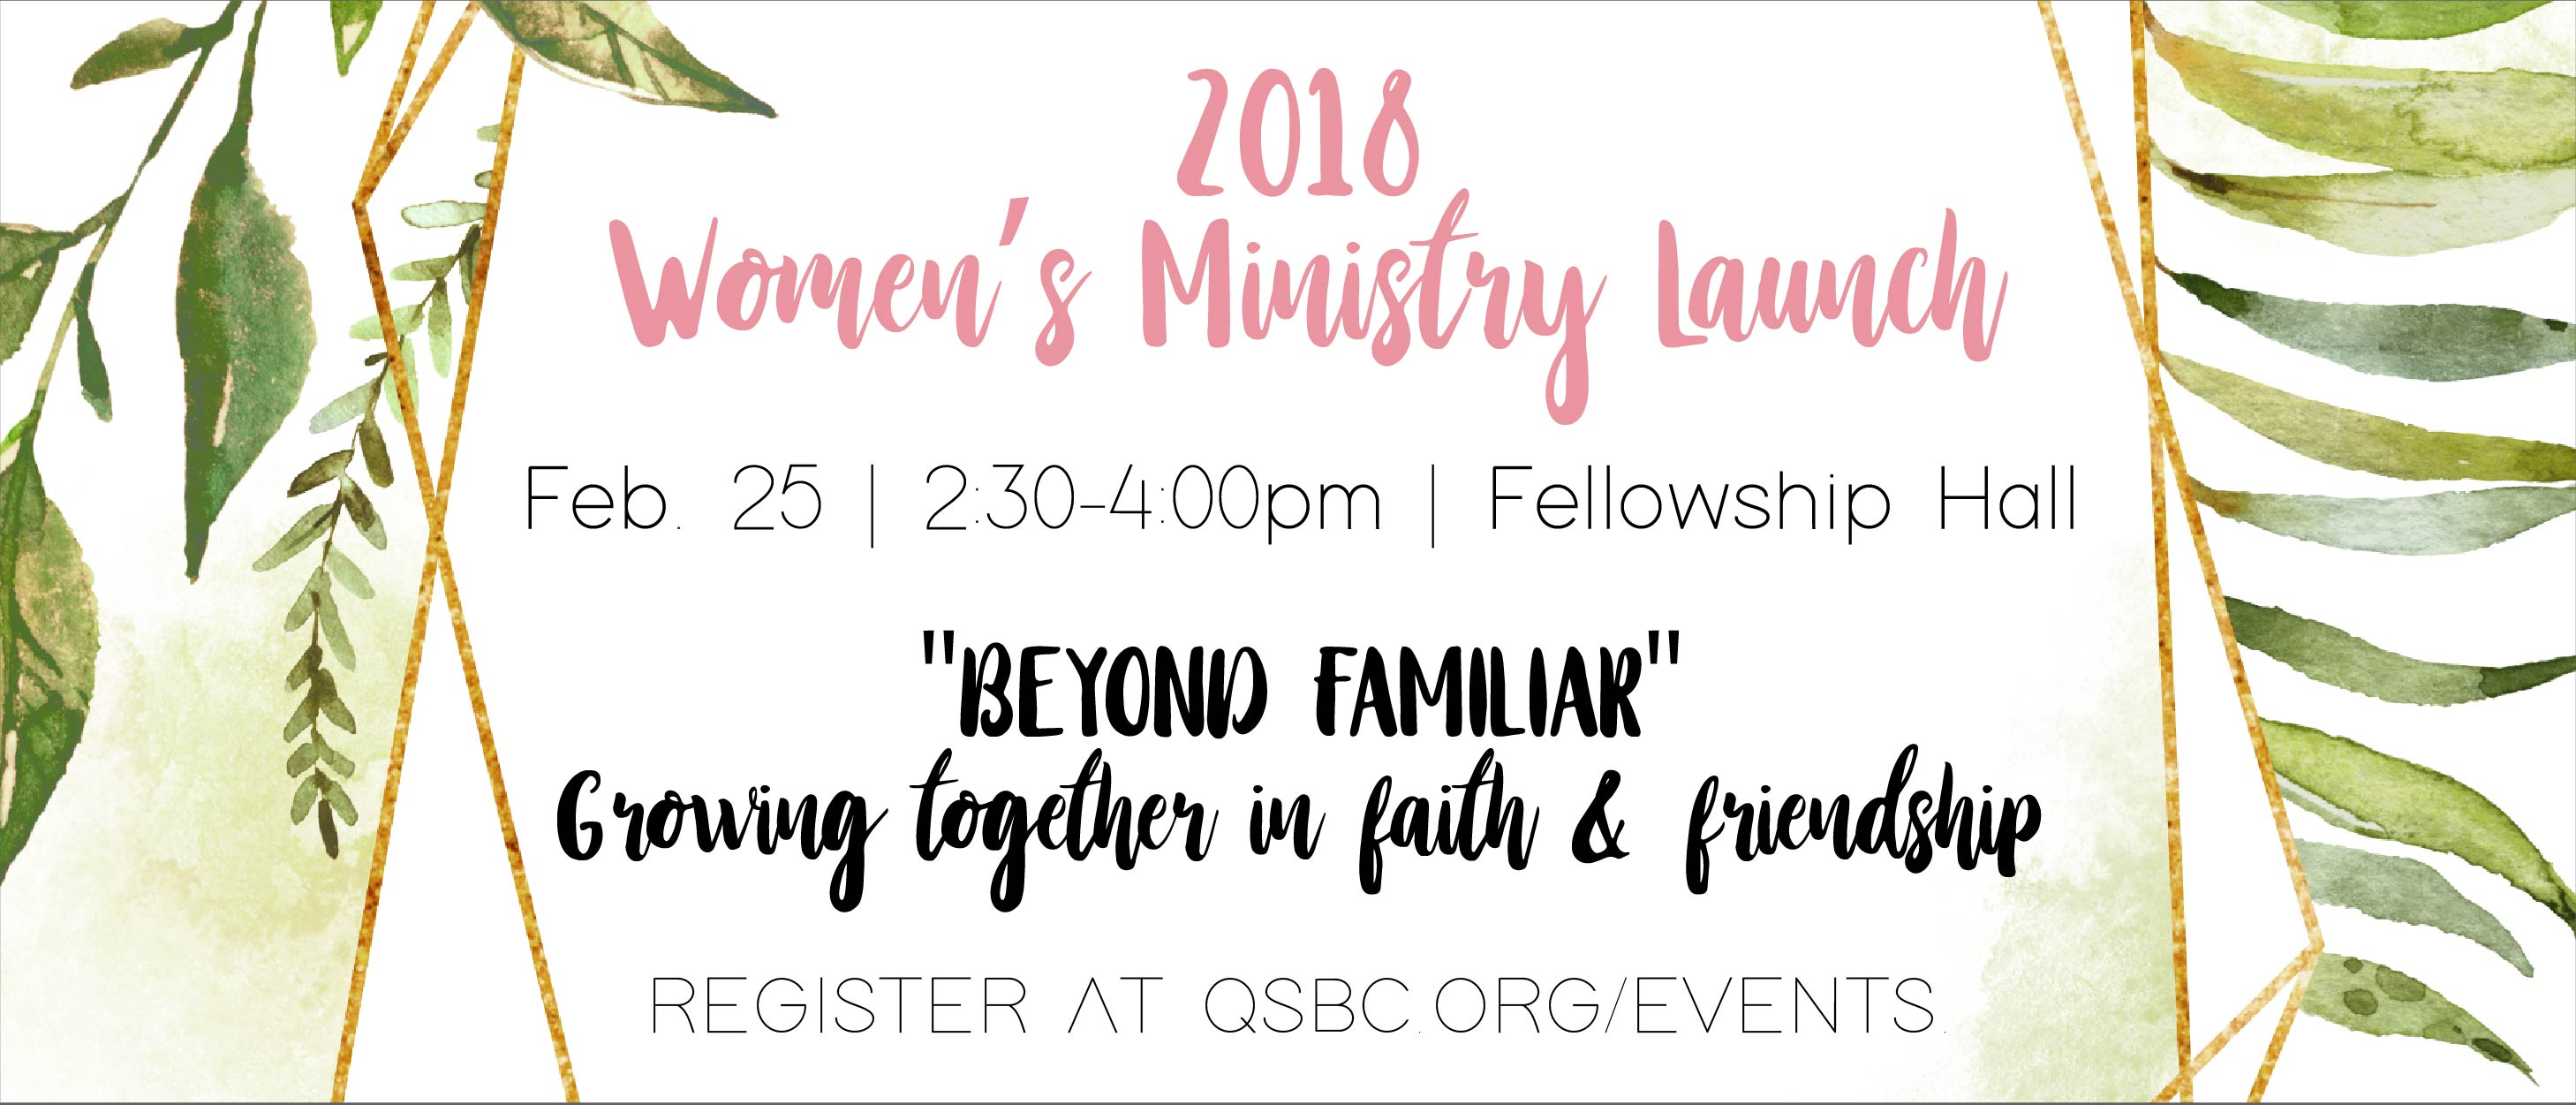 2018 Women's Ministry Launch